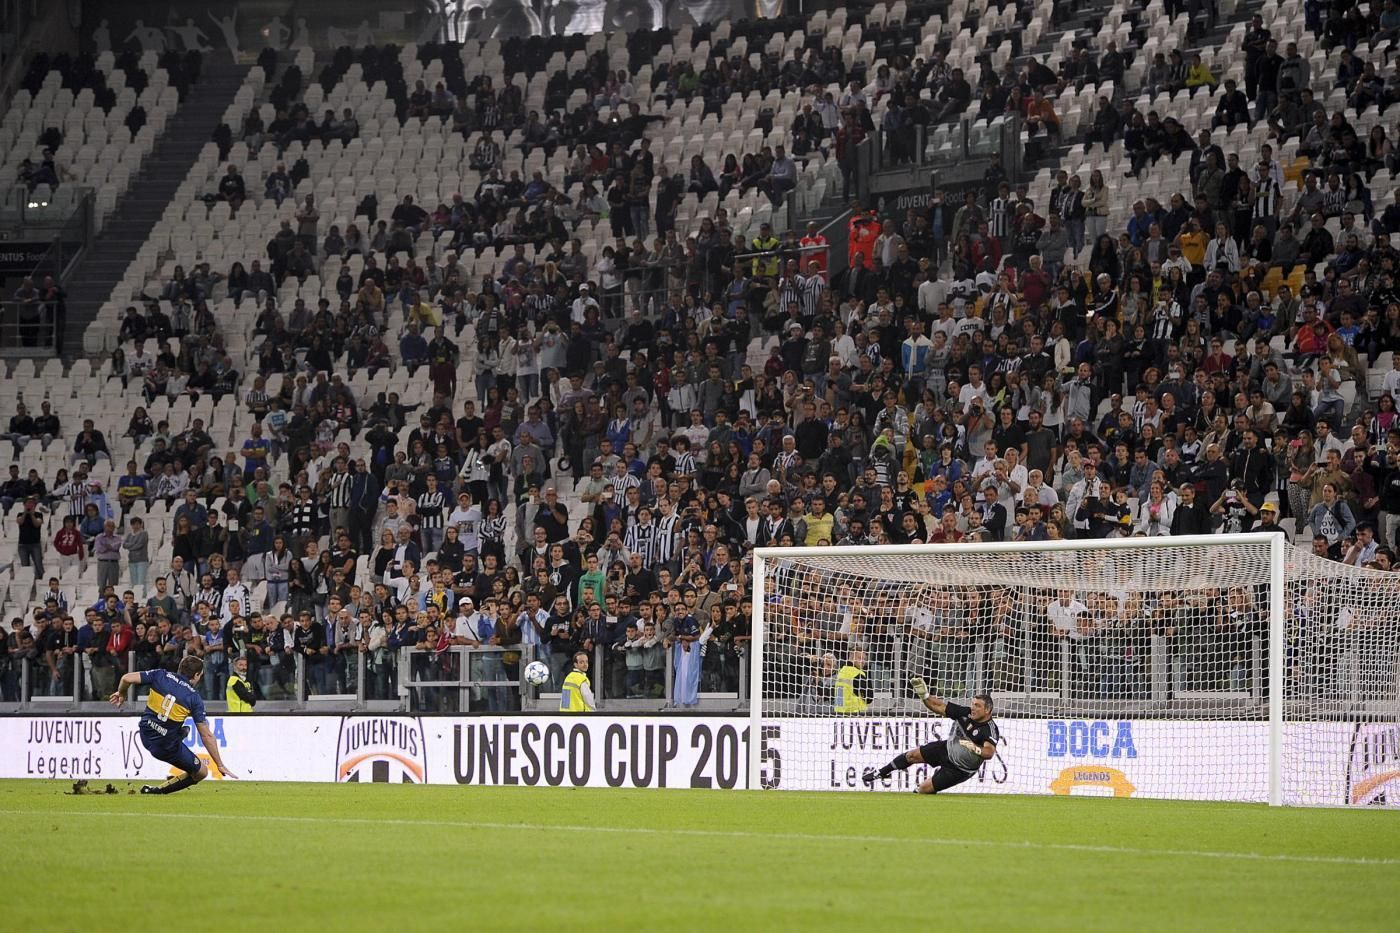 UNESCO CUP 2015 Juventus vs Boca Juniors